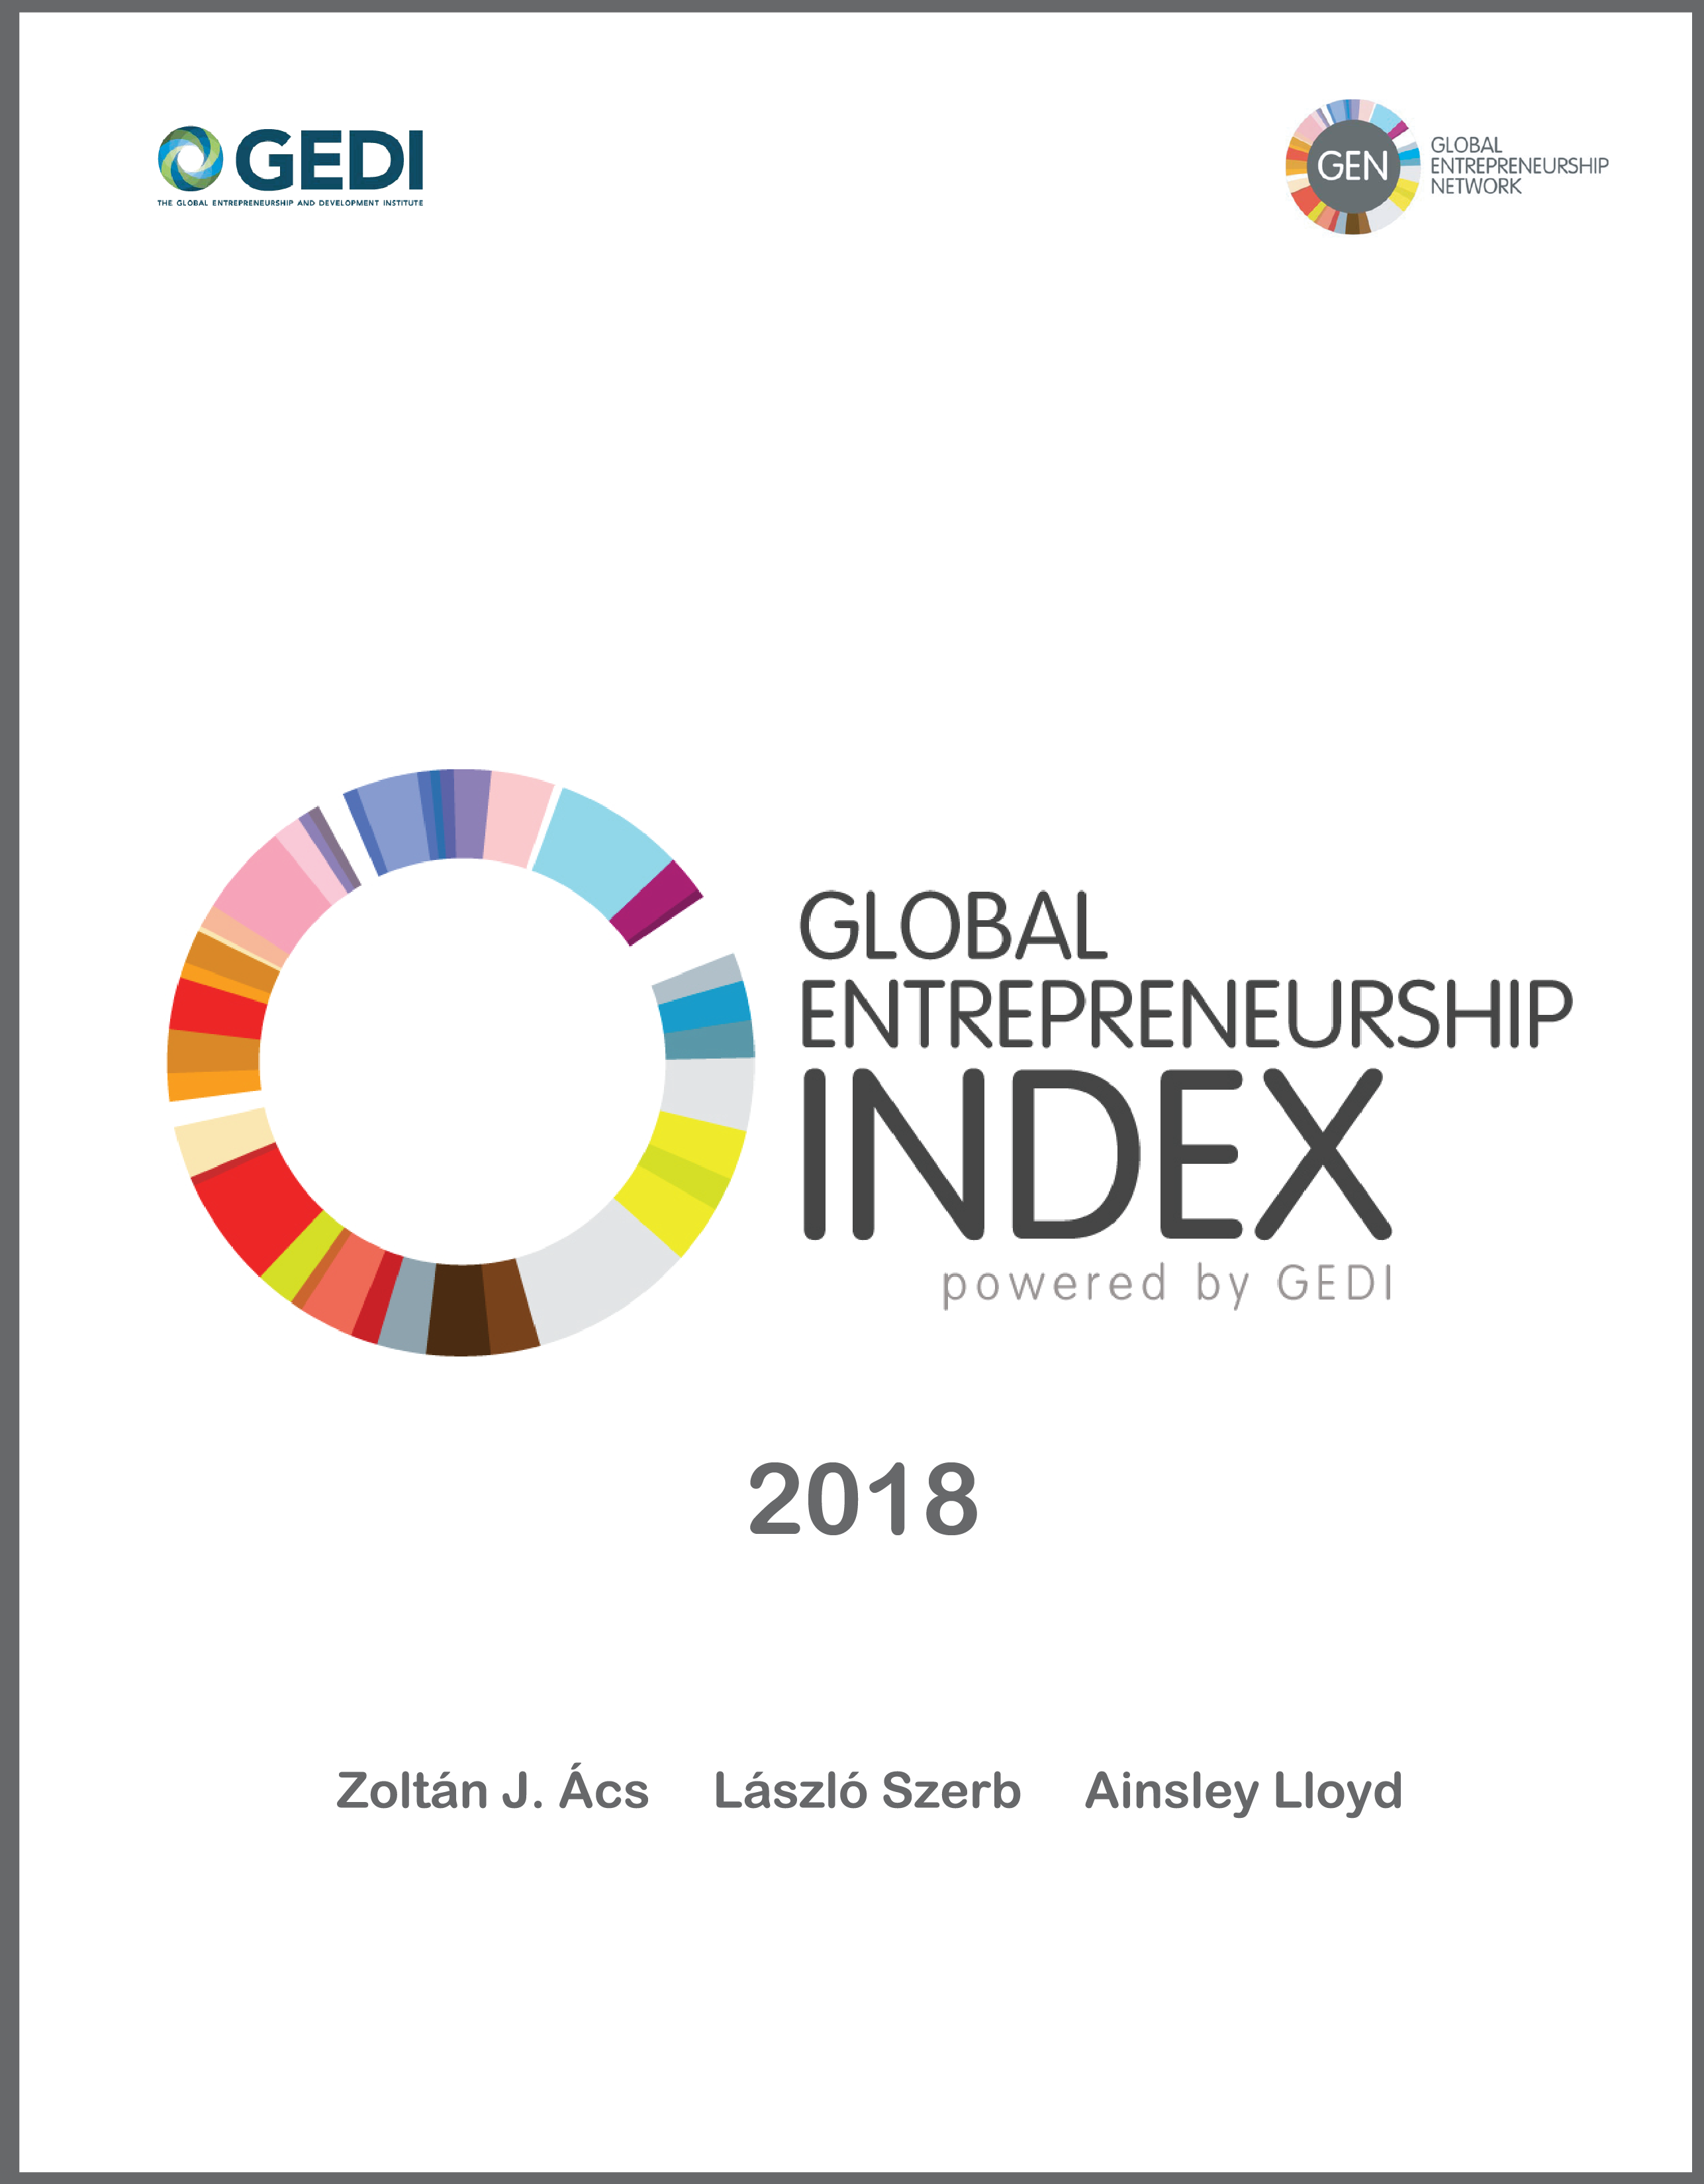 2018 Global Entrepreneurship Index